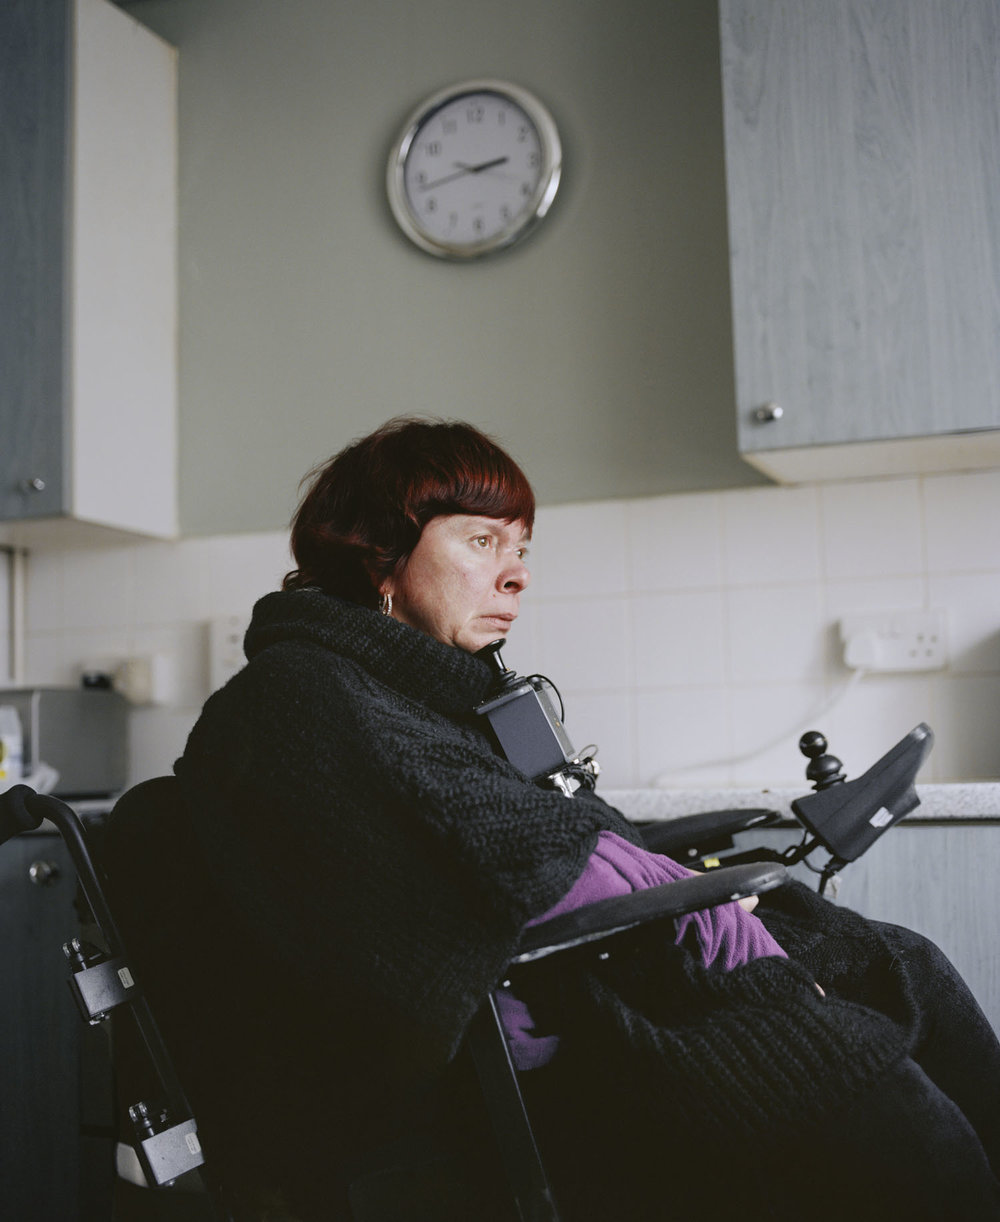 Sandra Mickiewicz Happy Club disabled women sat in wheelchair in her home in jaywick